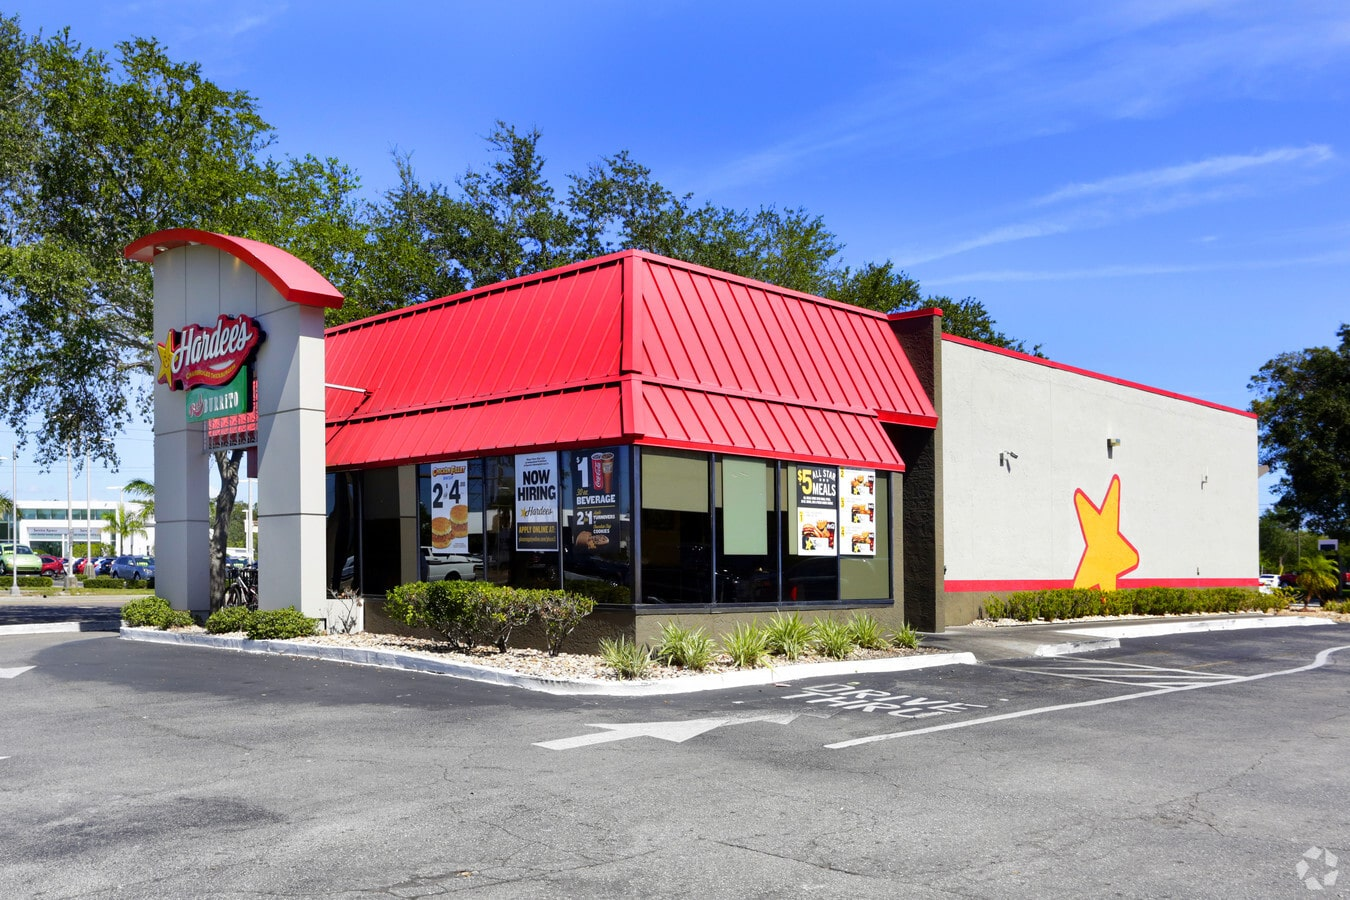 Multiple Offers Over List Price Result in Additional $82k on Hardee's Property